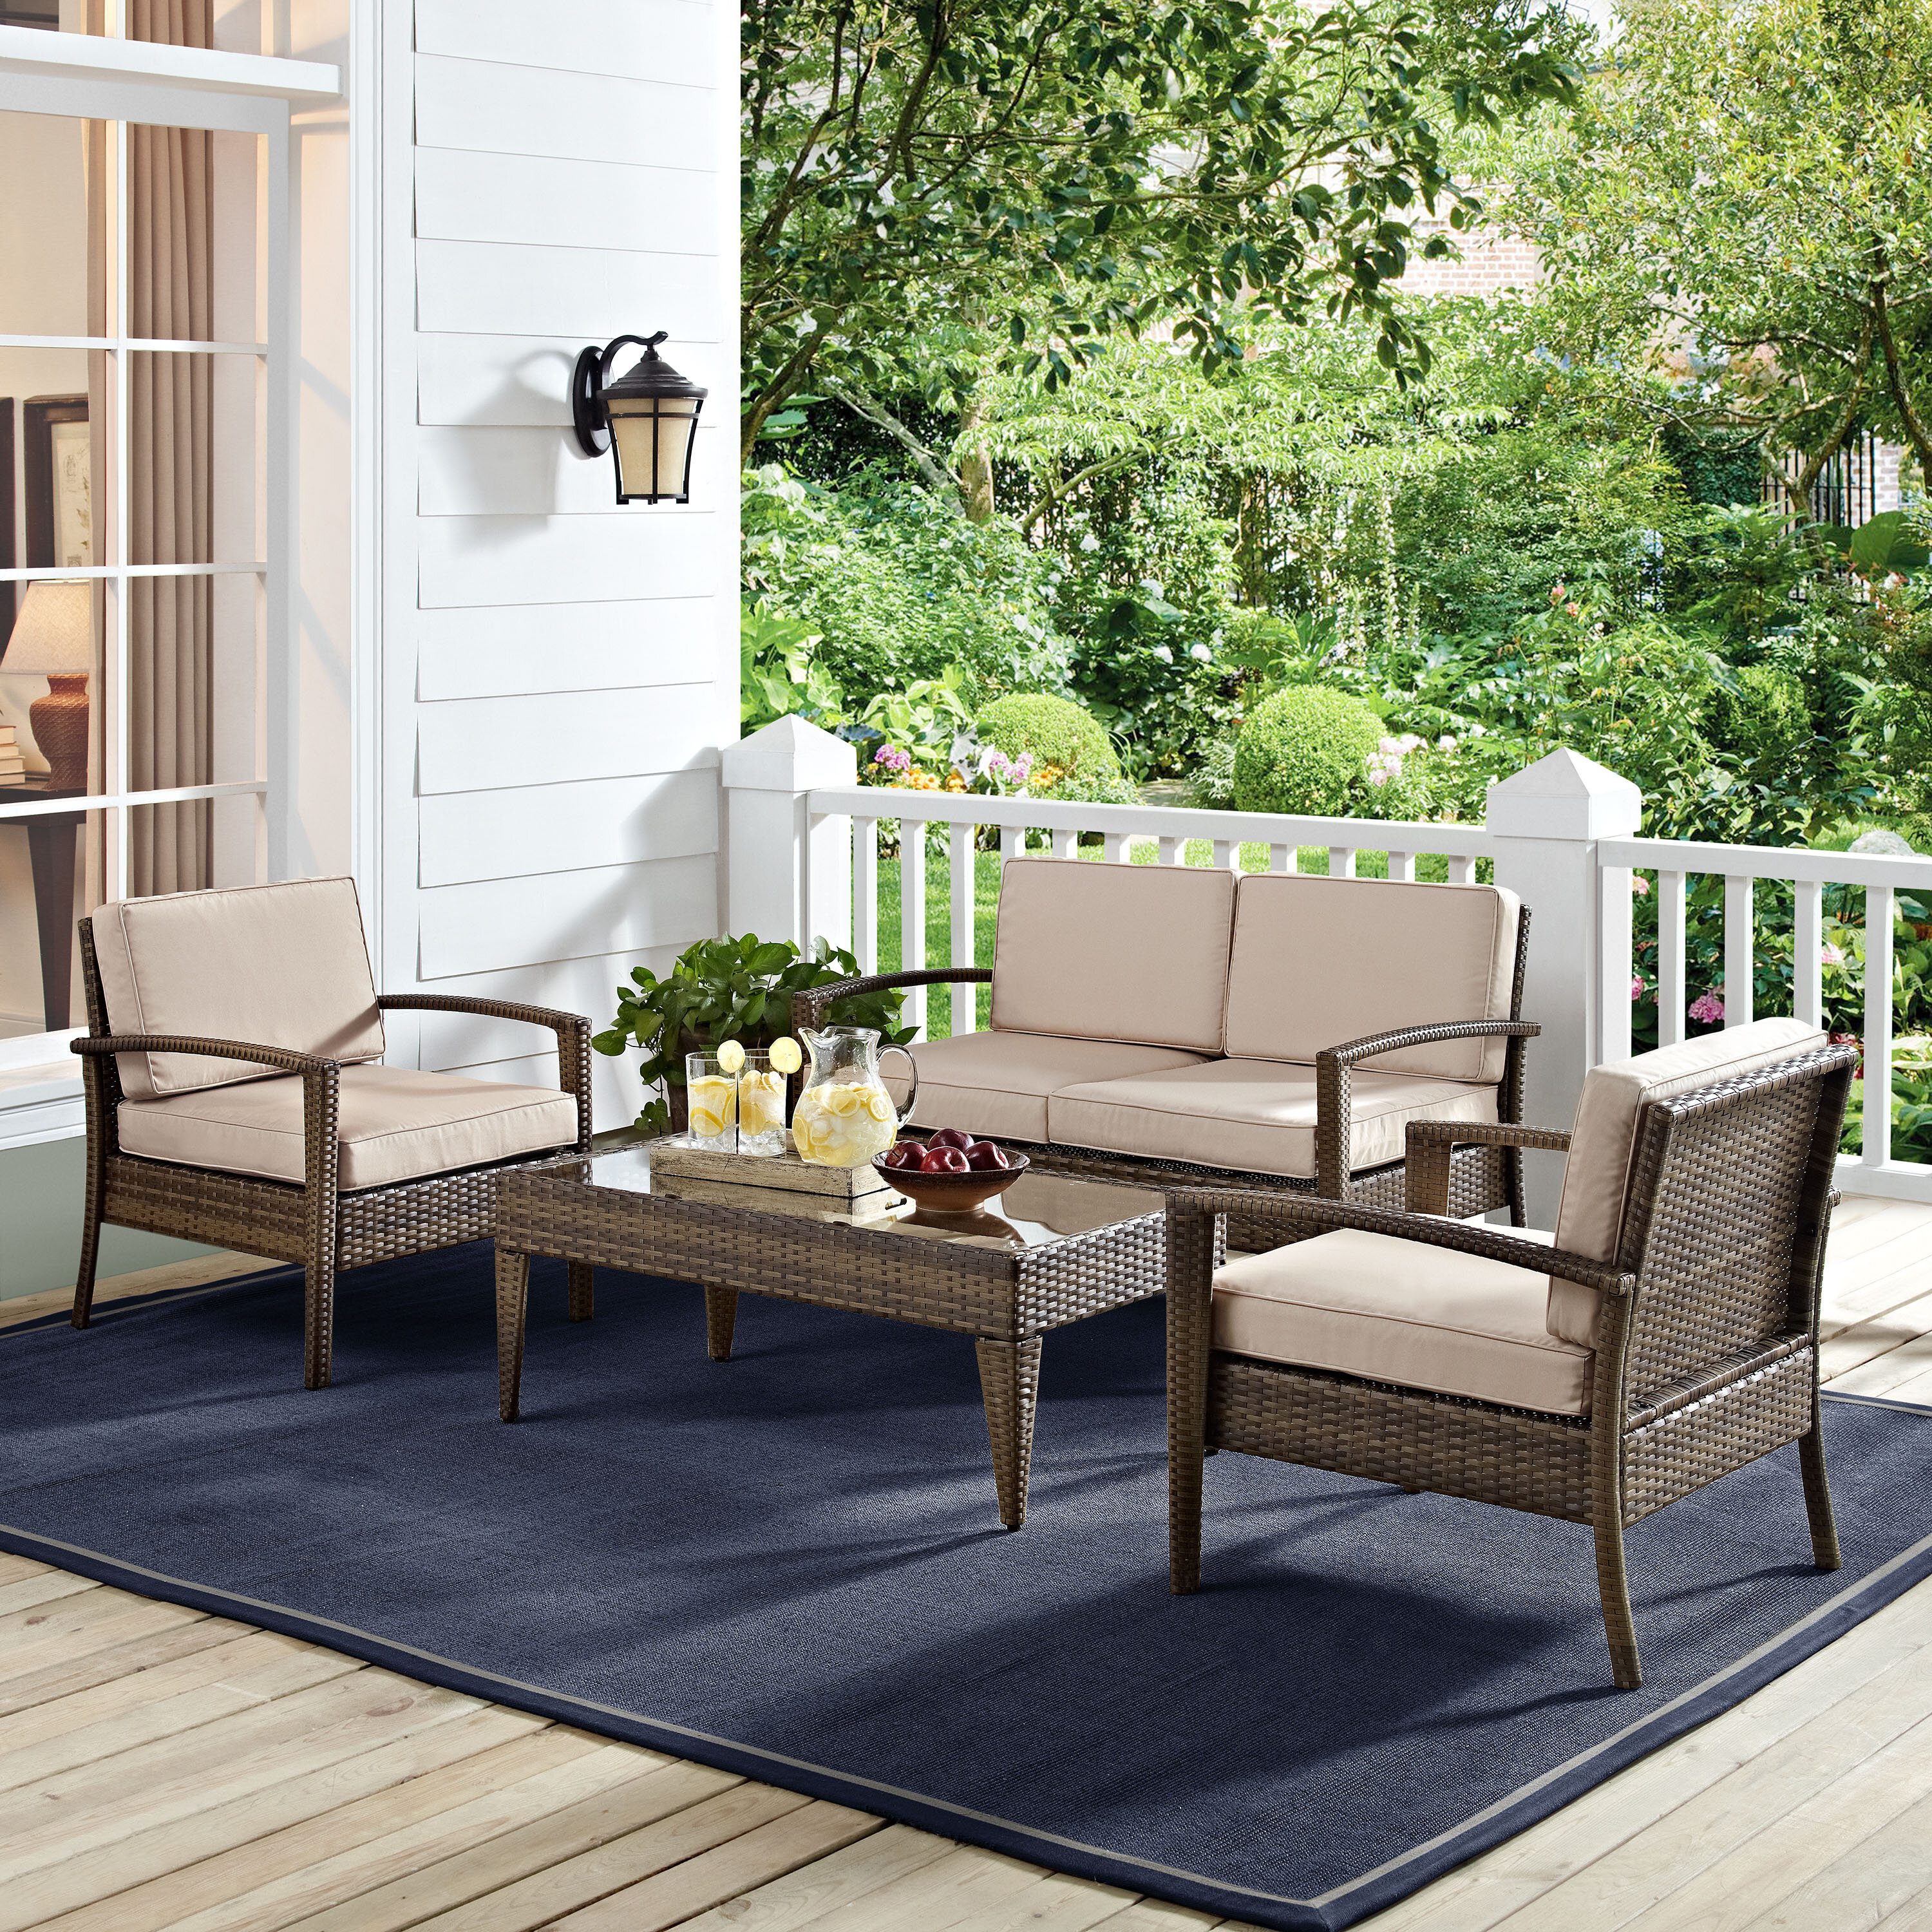 Glaser 4 Piece Outdoor Sofa Seating Group with Cushions